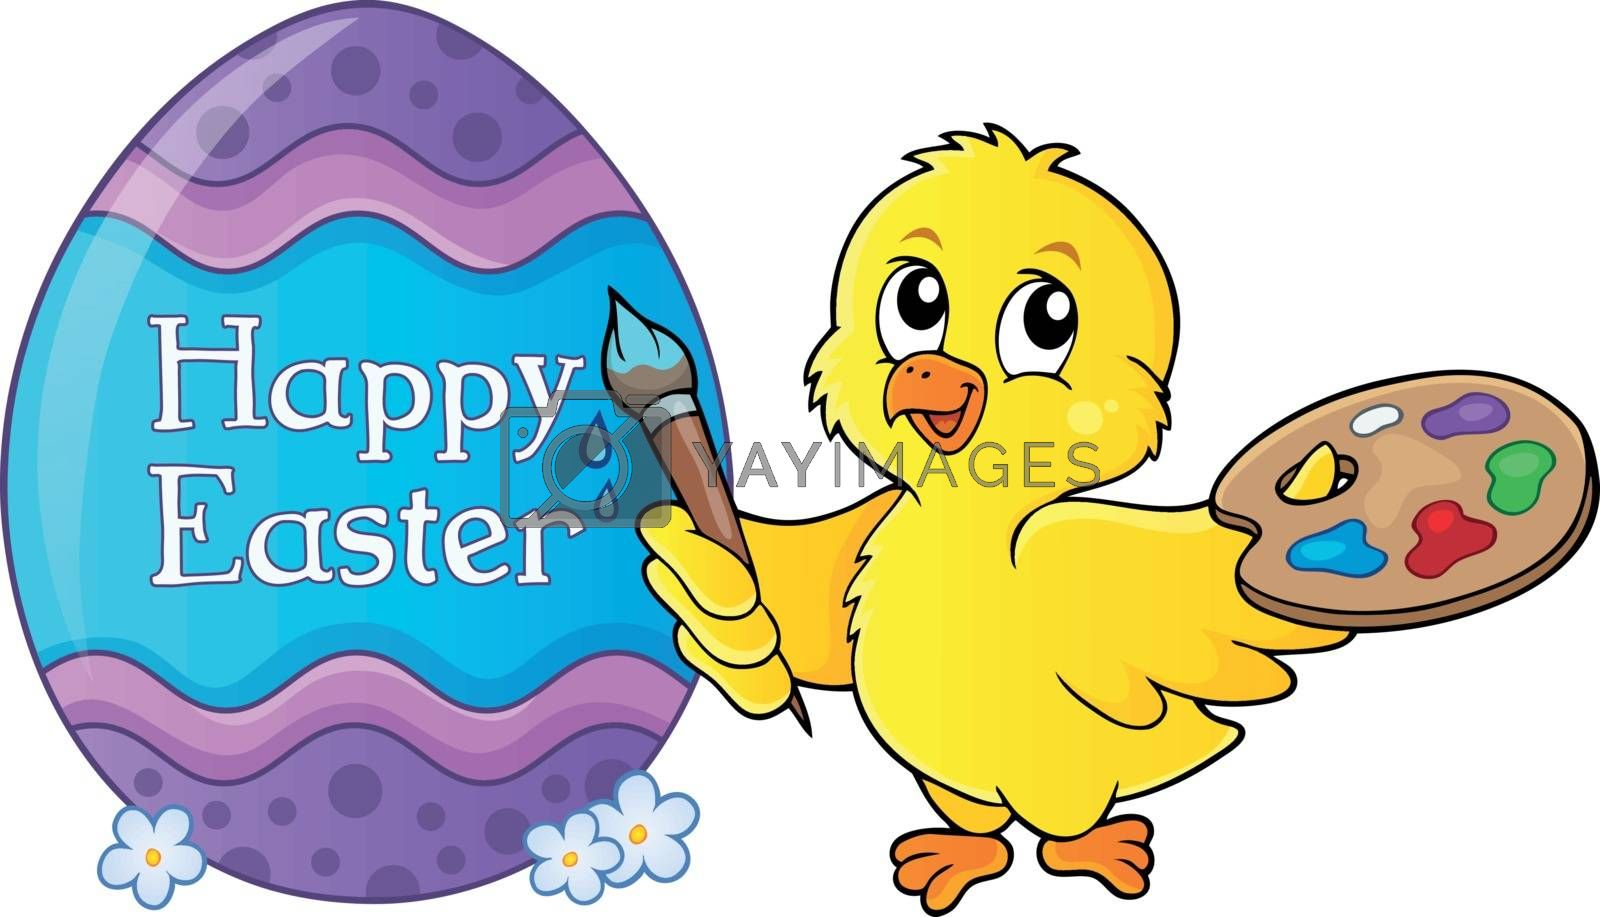 Easter egg with chicken painter theme 1 - eps10 vector illustration.